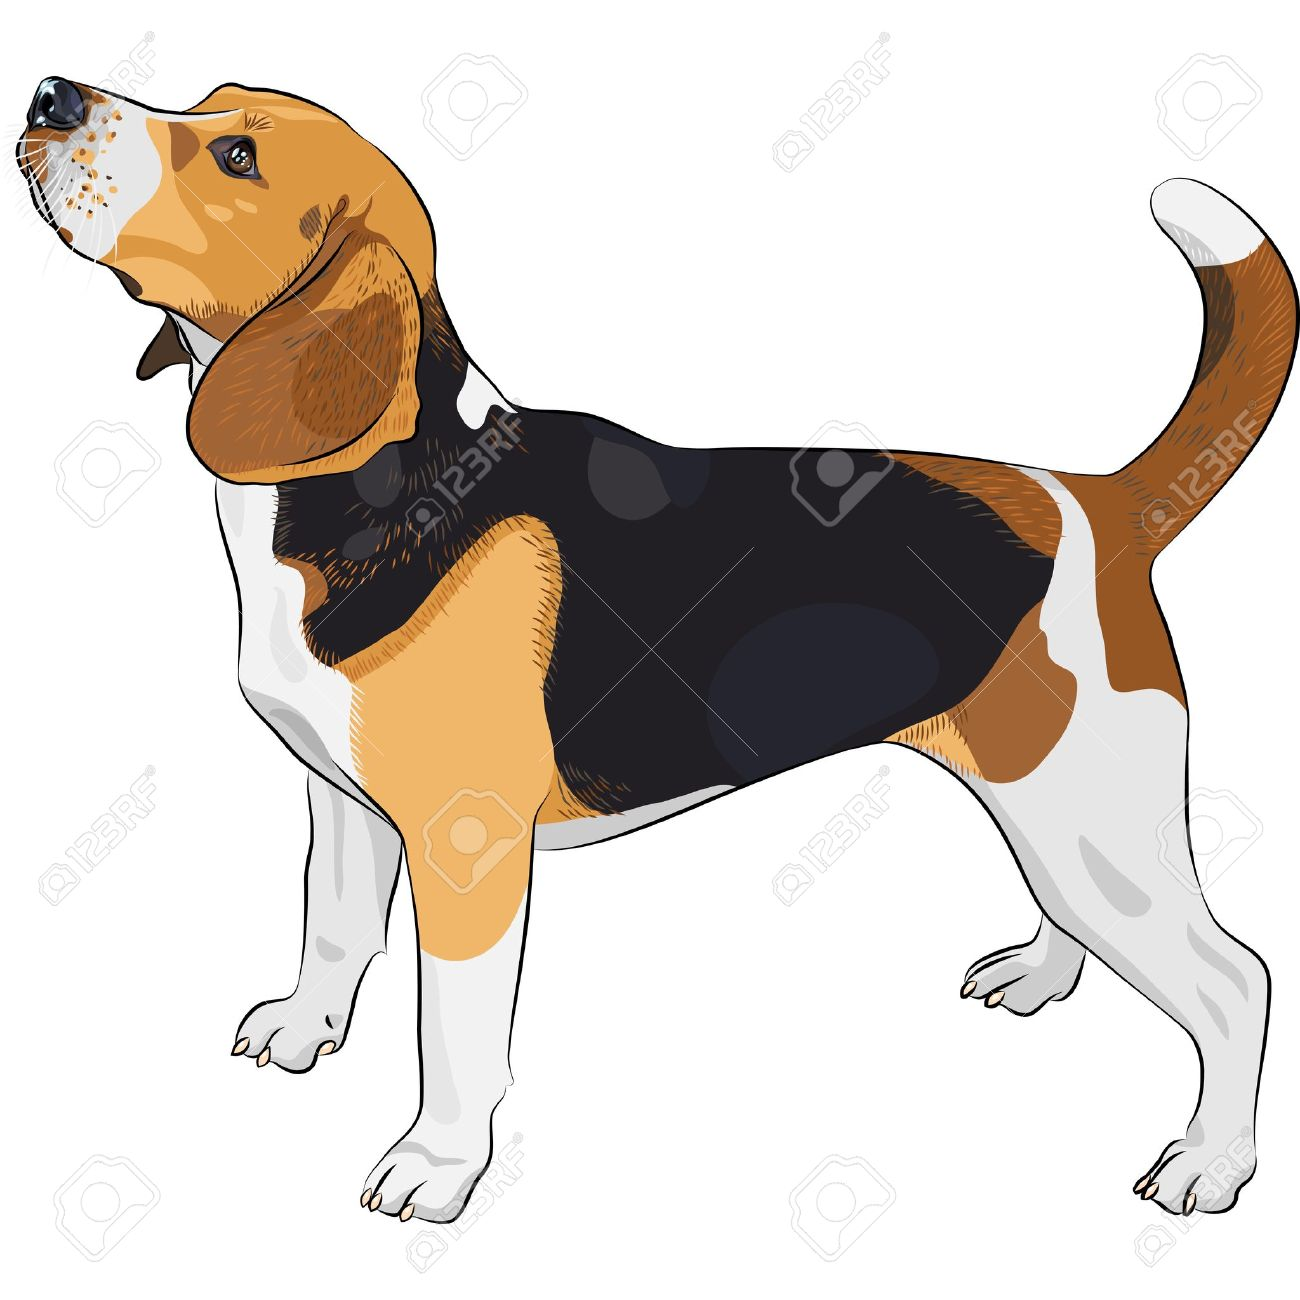 Beagle clipart #11, Download drawings